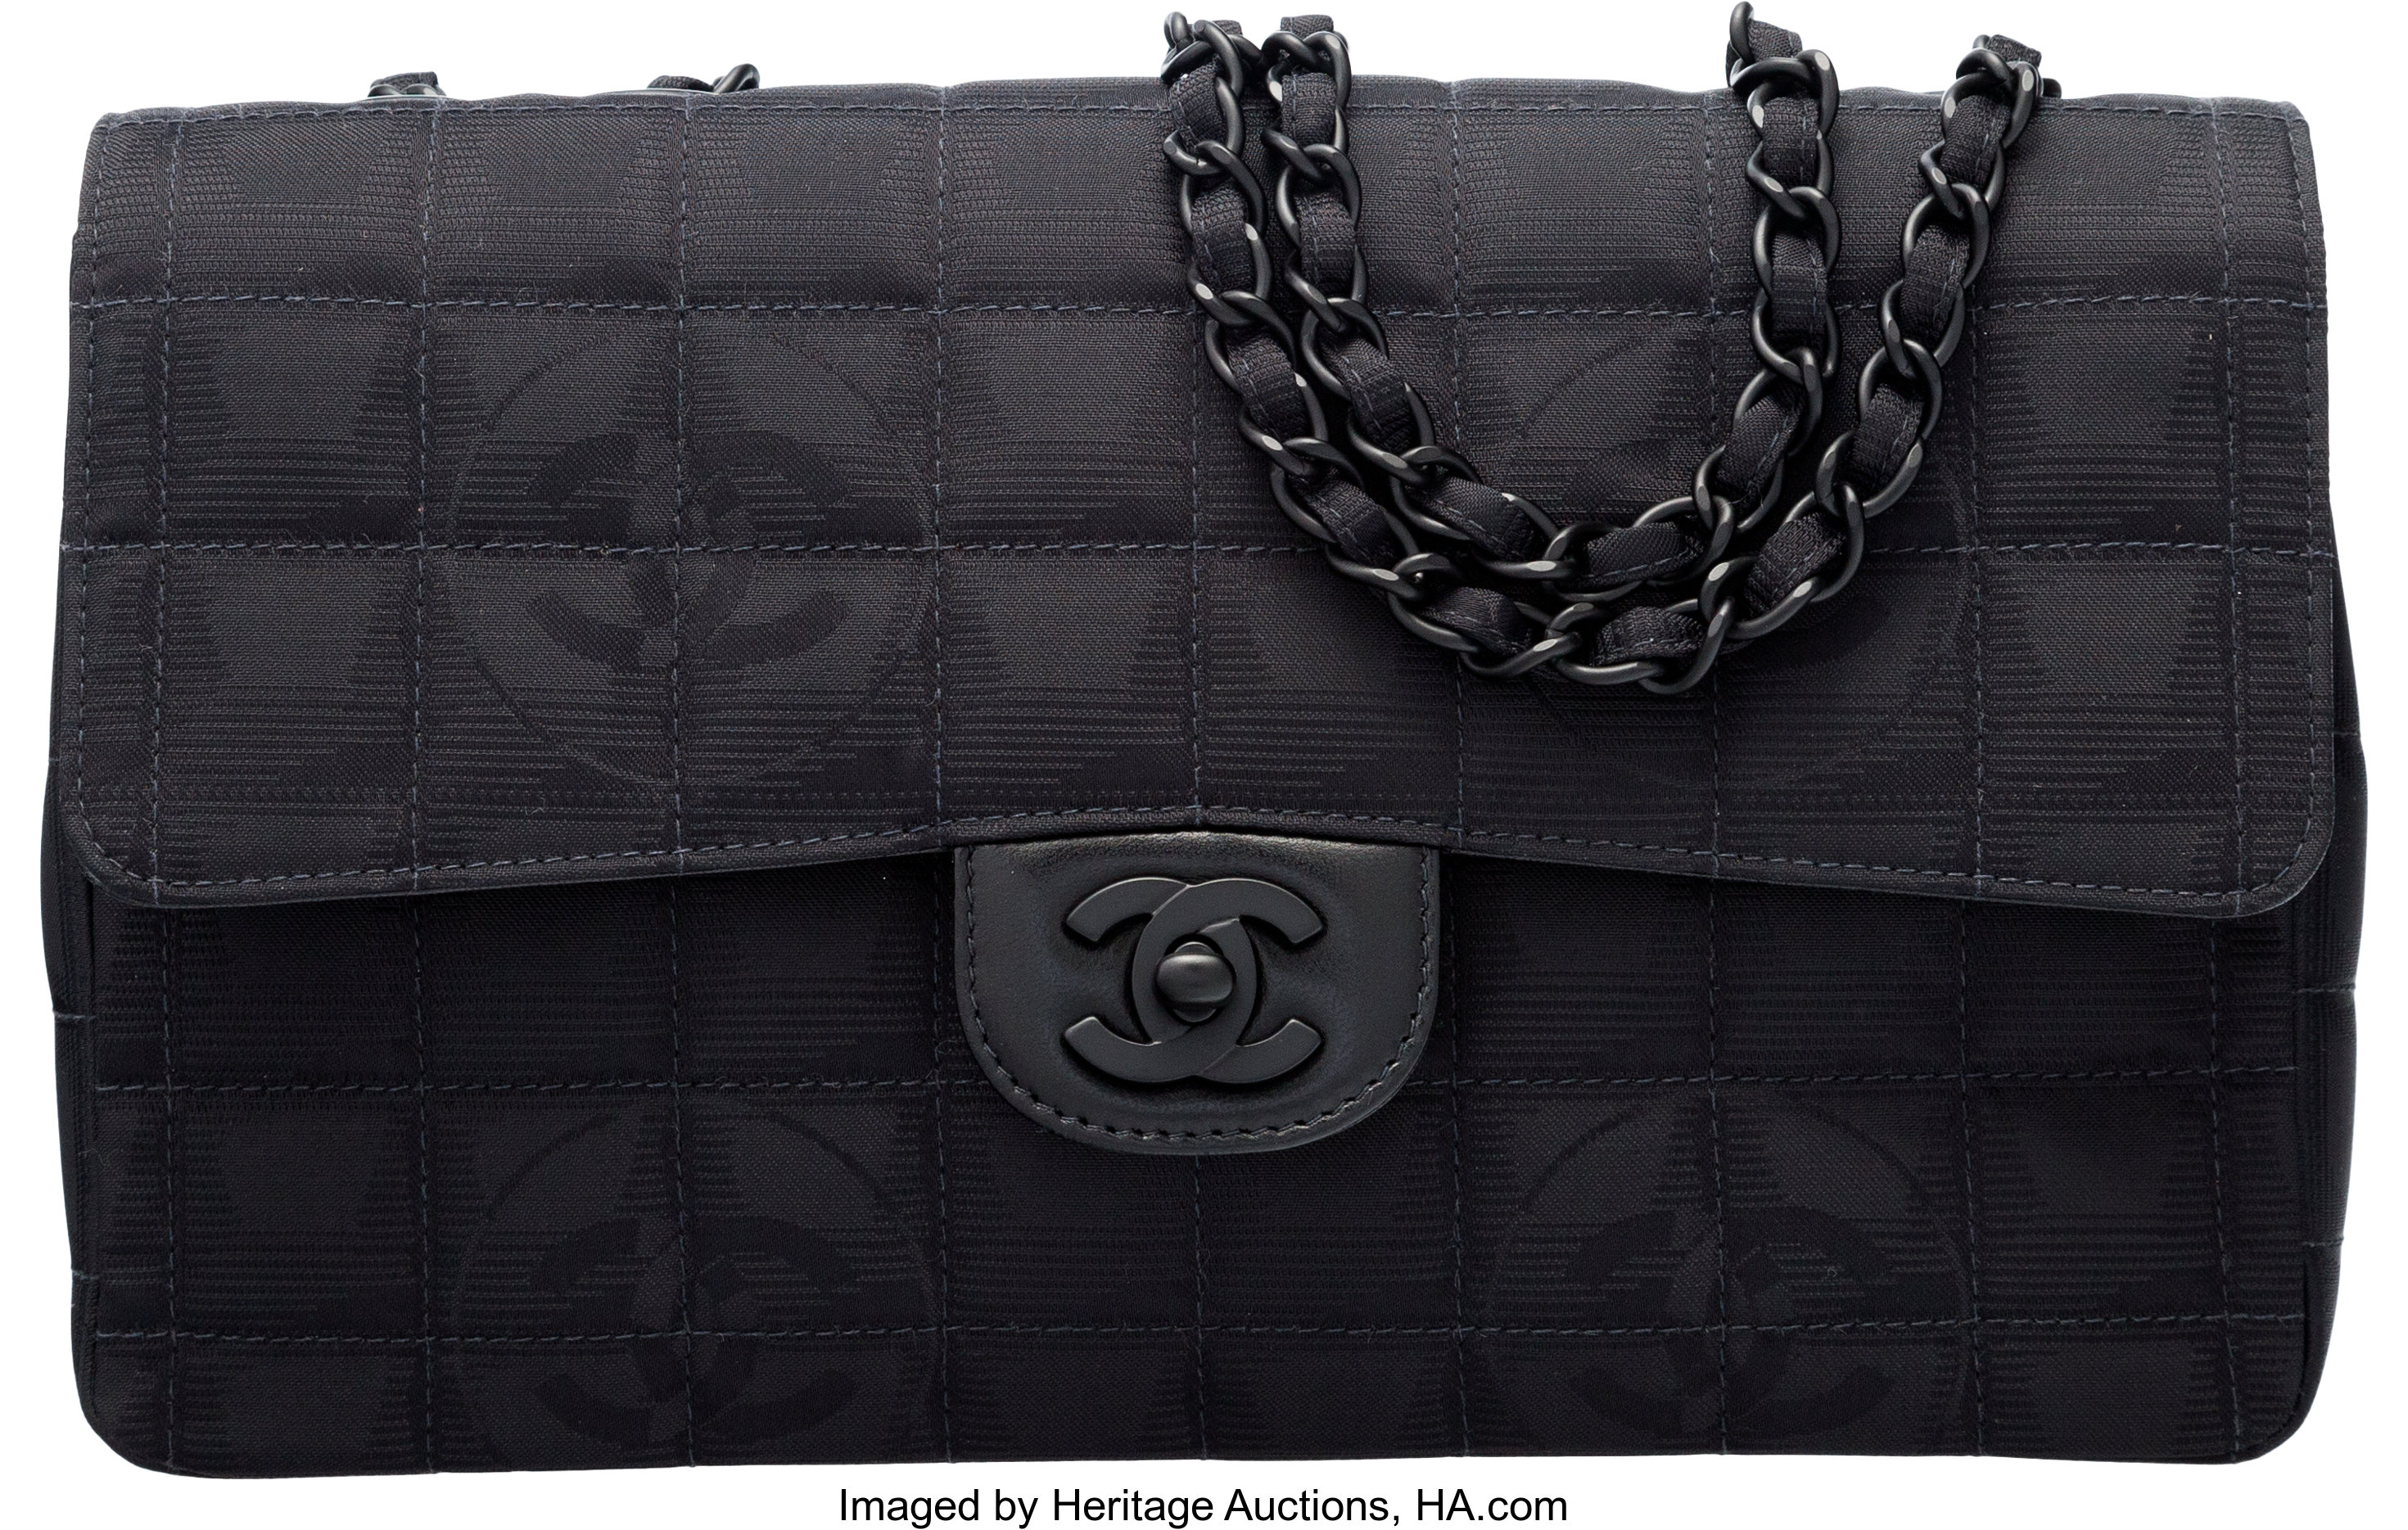 Chanel Black Quilted Grosgrain Medium